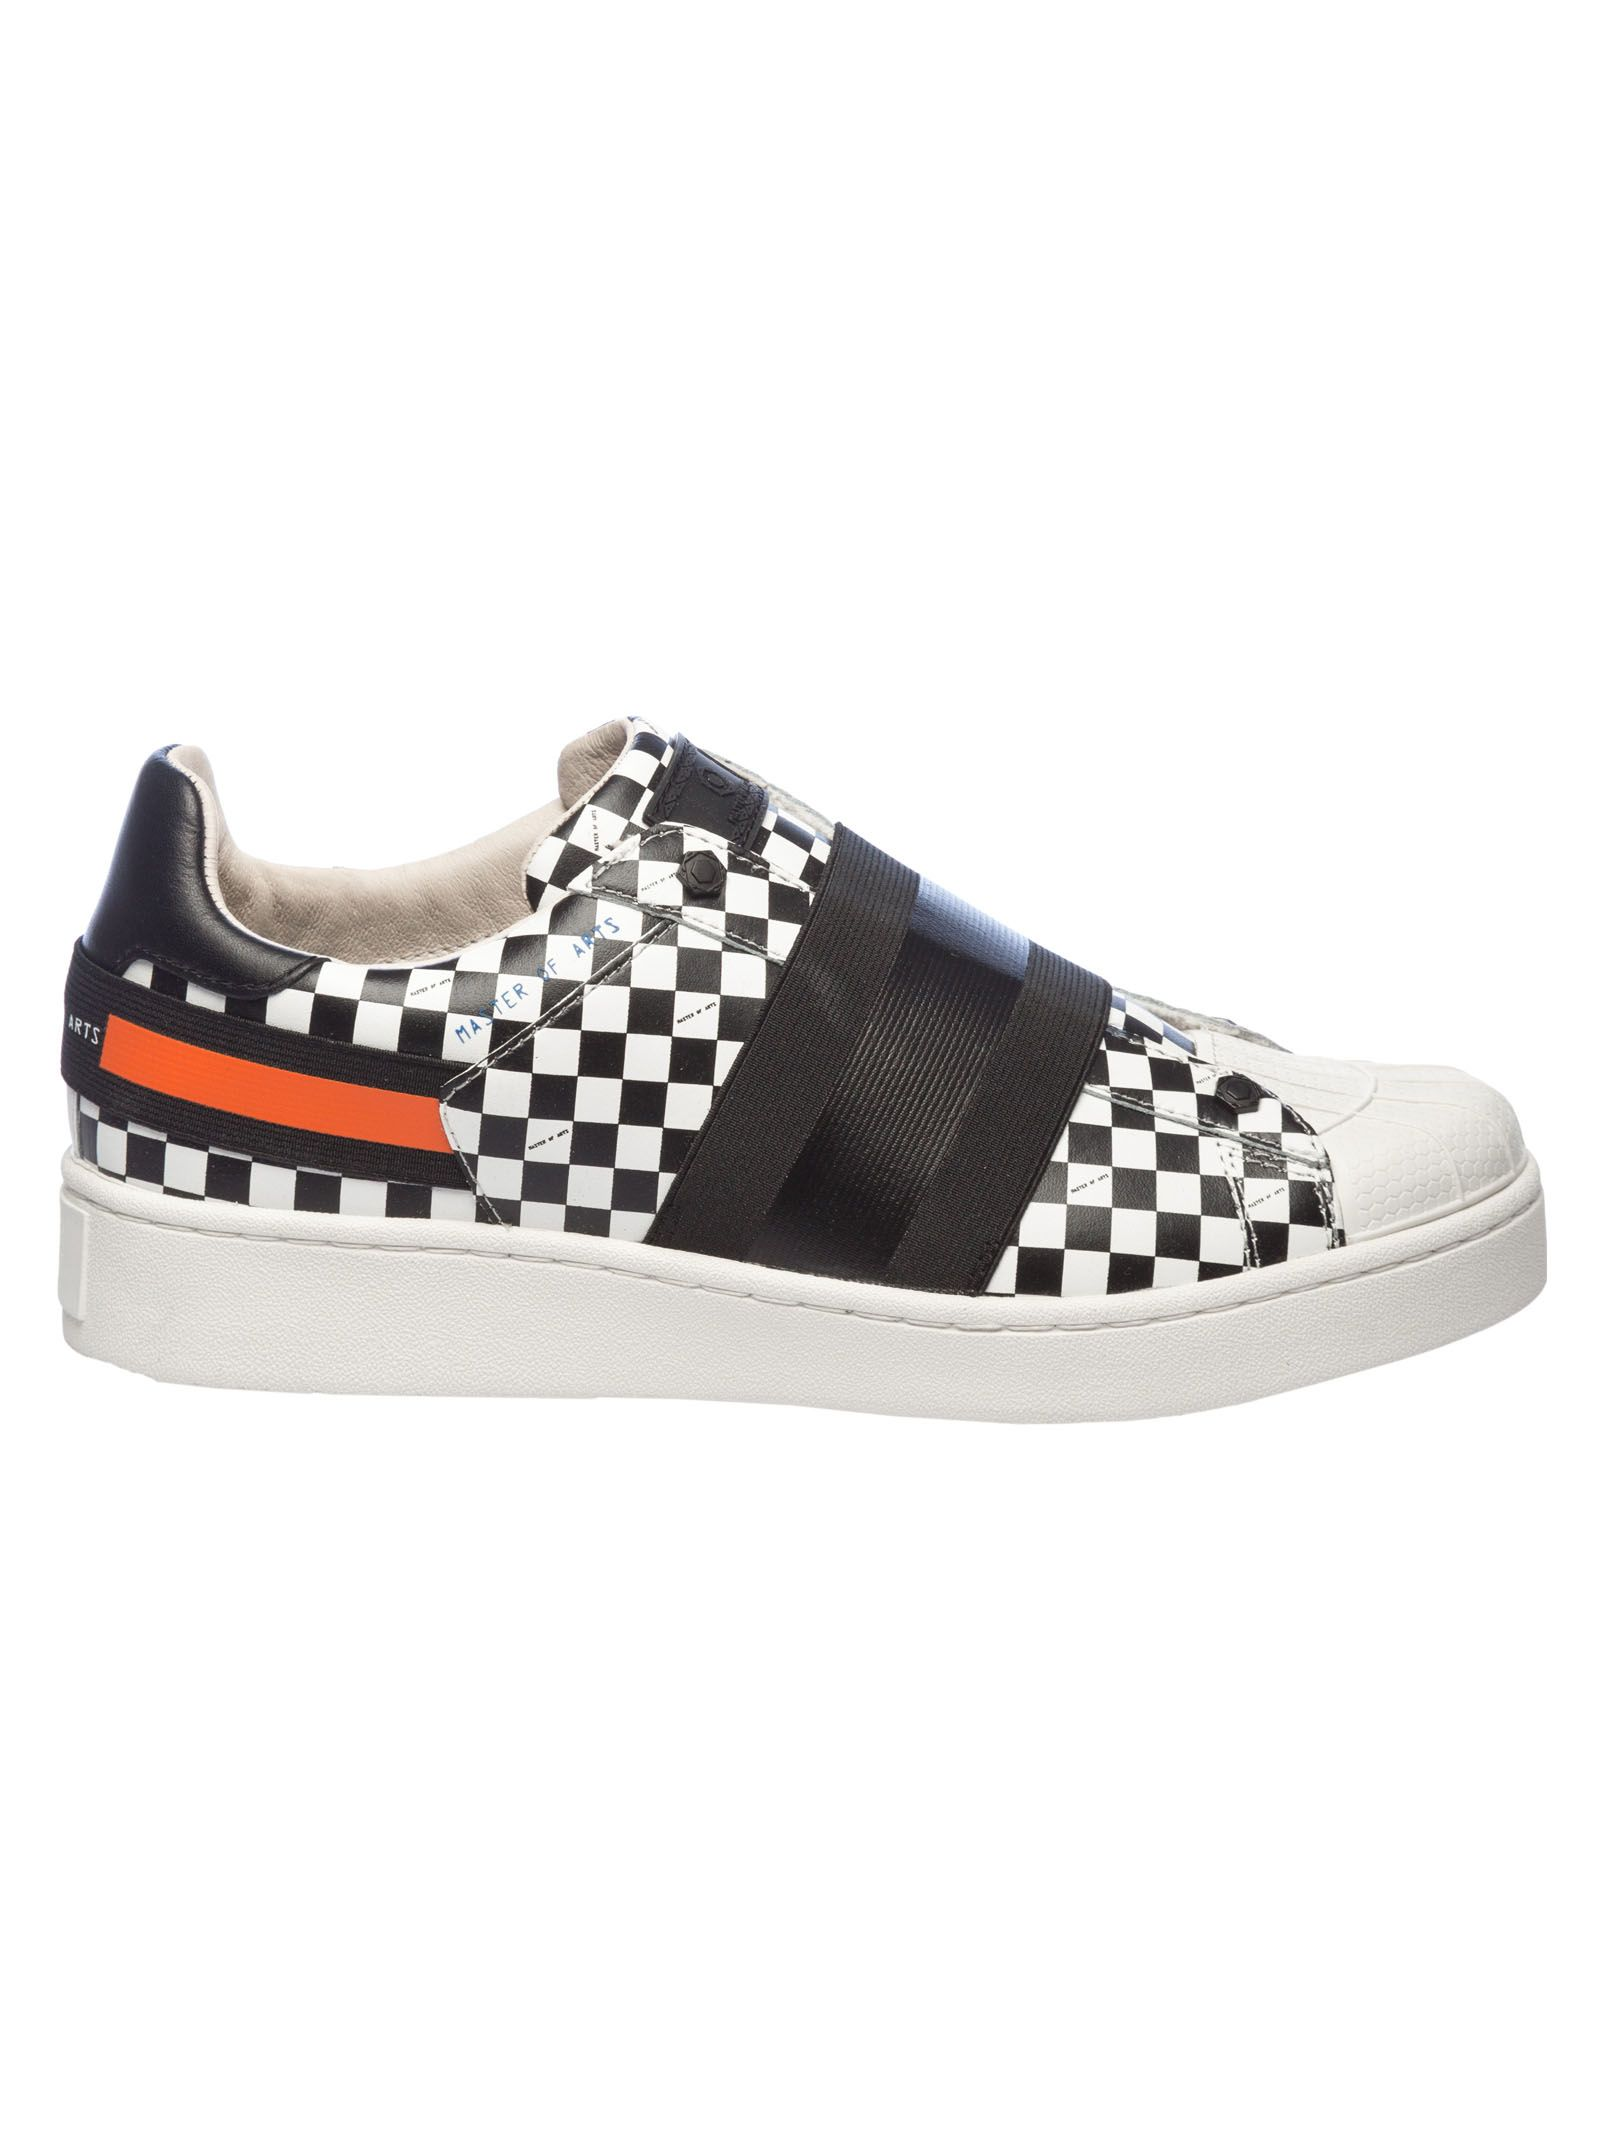 MOA COLLECTION Moa Usa Checked Print Sneakers in White/Black